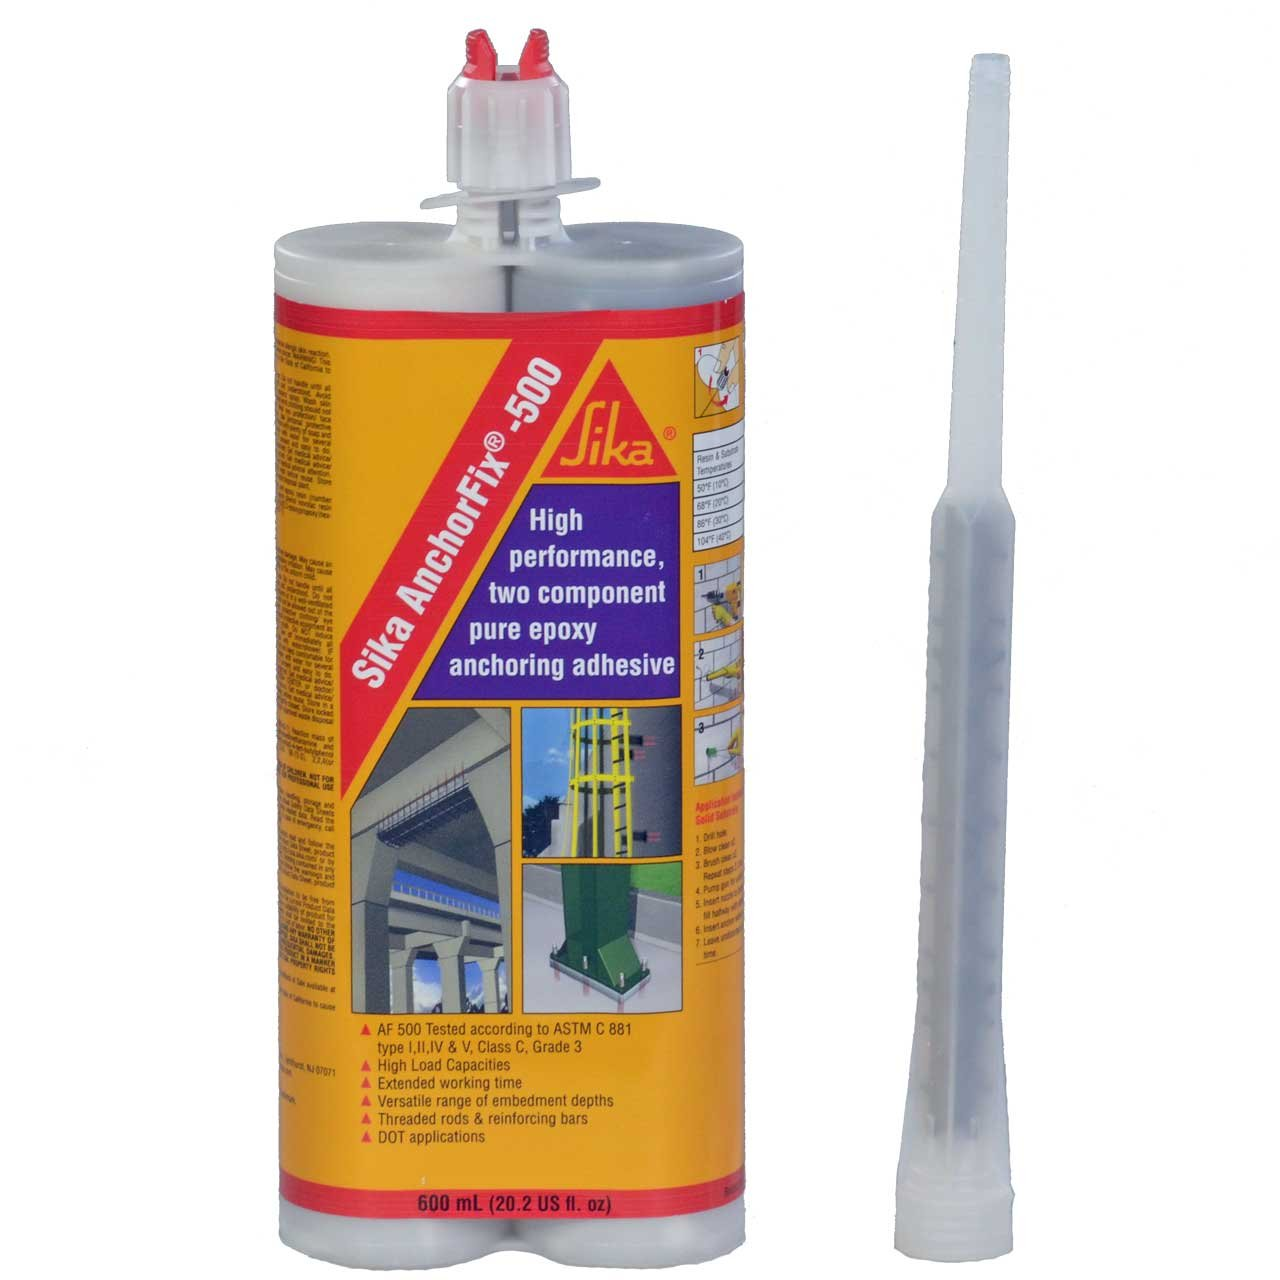 Epoxy Adhesive Applicator, 22 oz. Dual Cartridge Capacity, 25:1 Thrust, AWF Pro with 1 Cartridge, Sika AnchorFix 500: 20 oz Two Component Epoxy, High Performance, Concrete Anchoring System by Sika (Image #3)